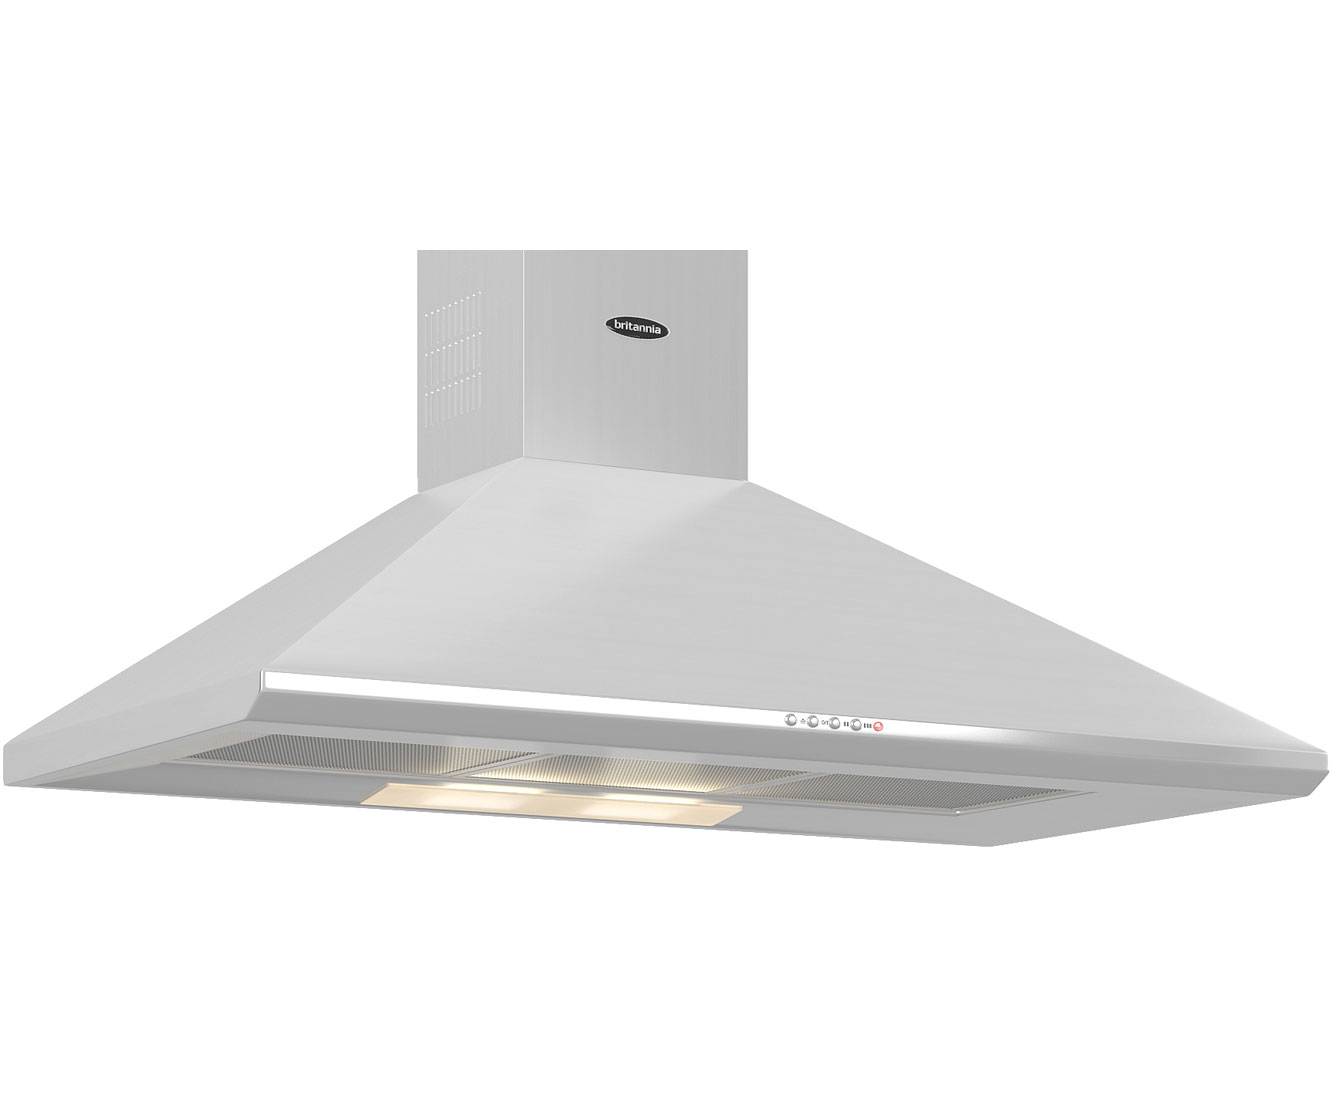 Chimney Hood Product ~ Britannia brioso hood k s cm chimney cooker